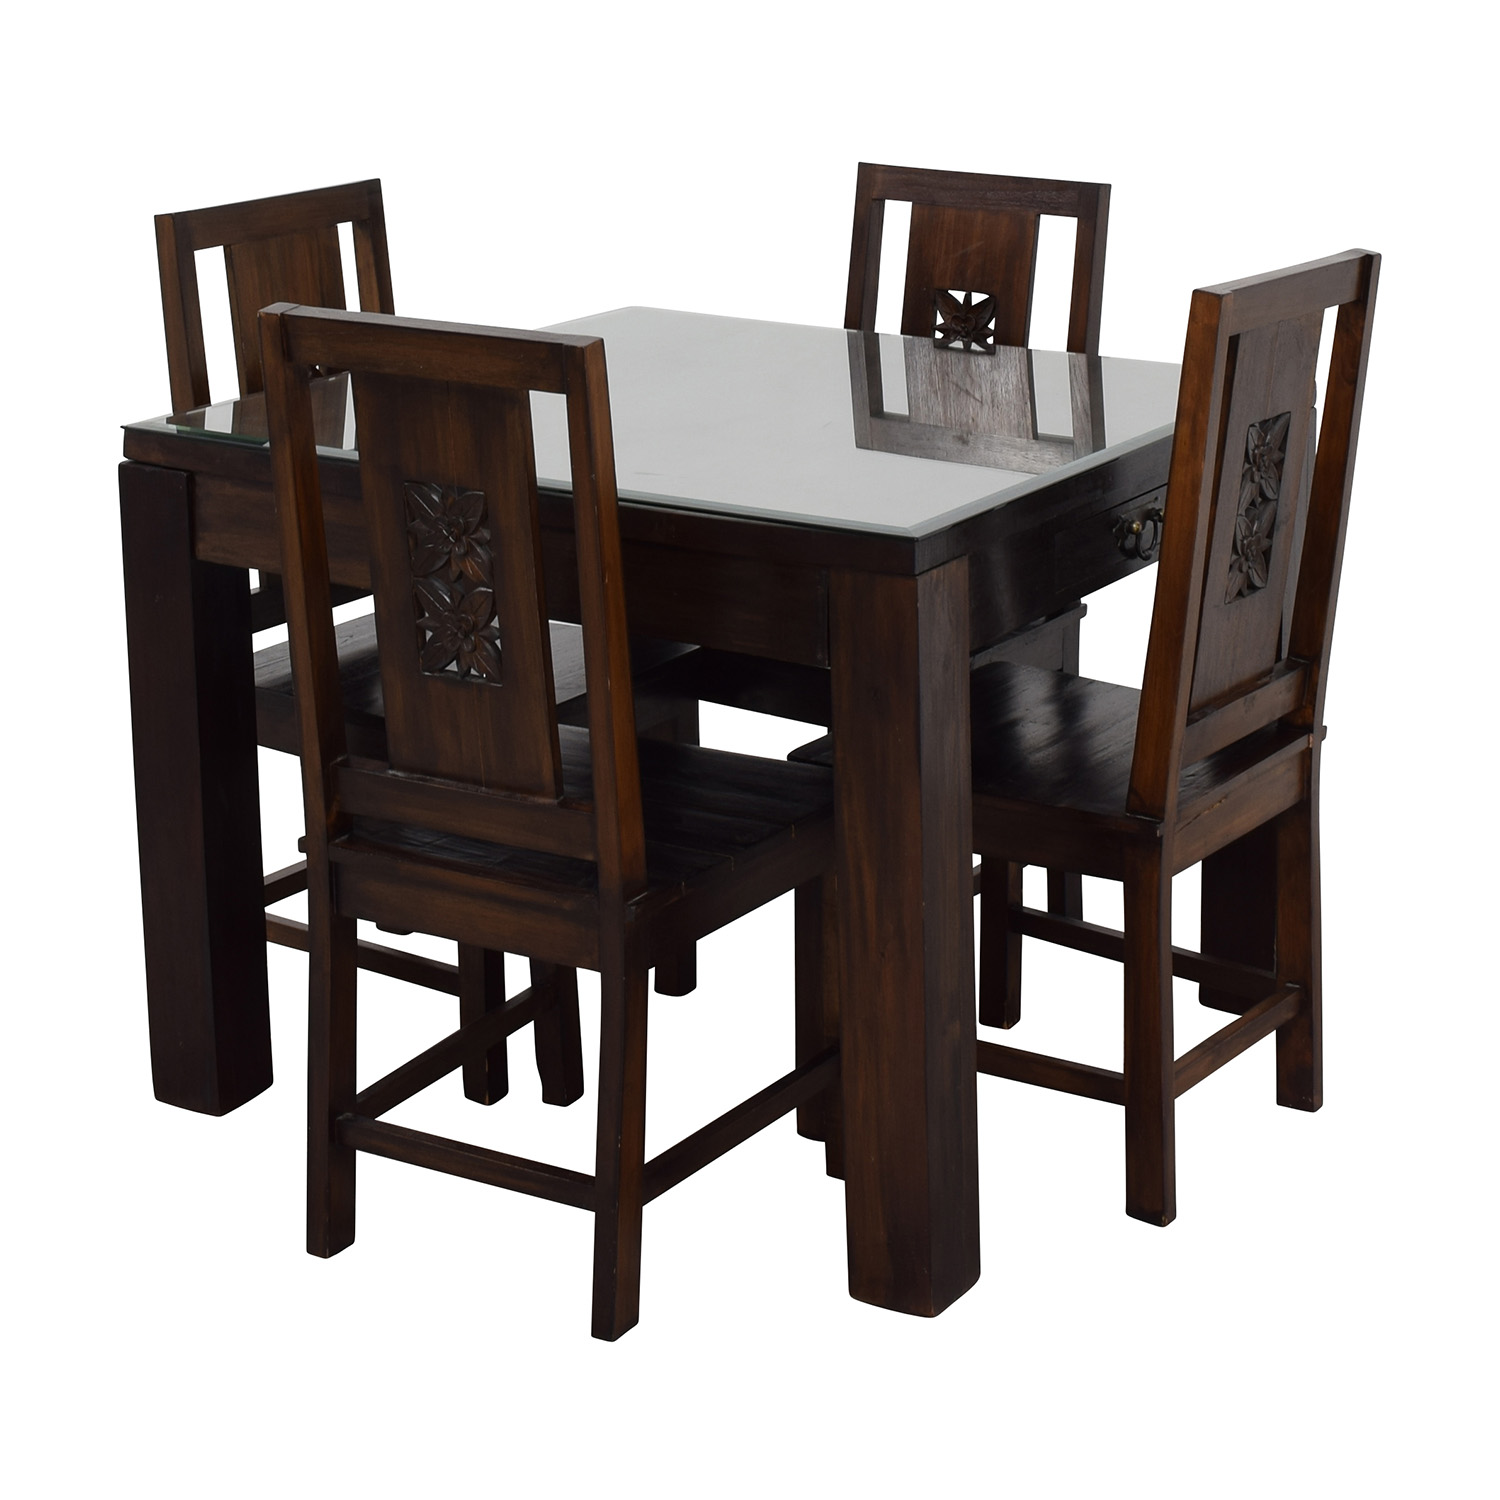 90 off balinese teak dining table set tables for Furniture 90 off